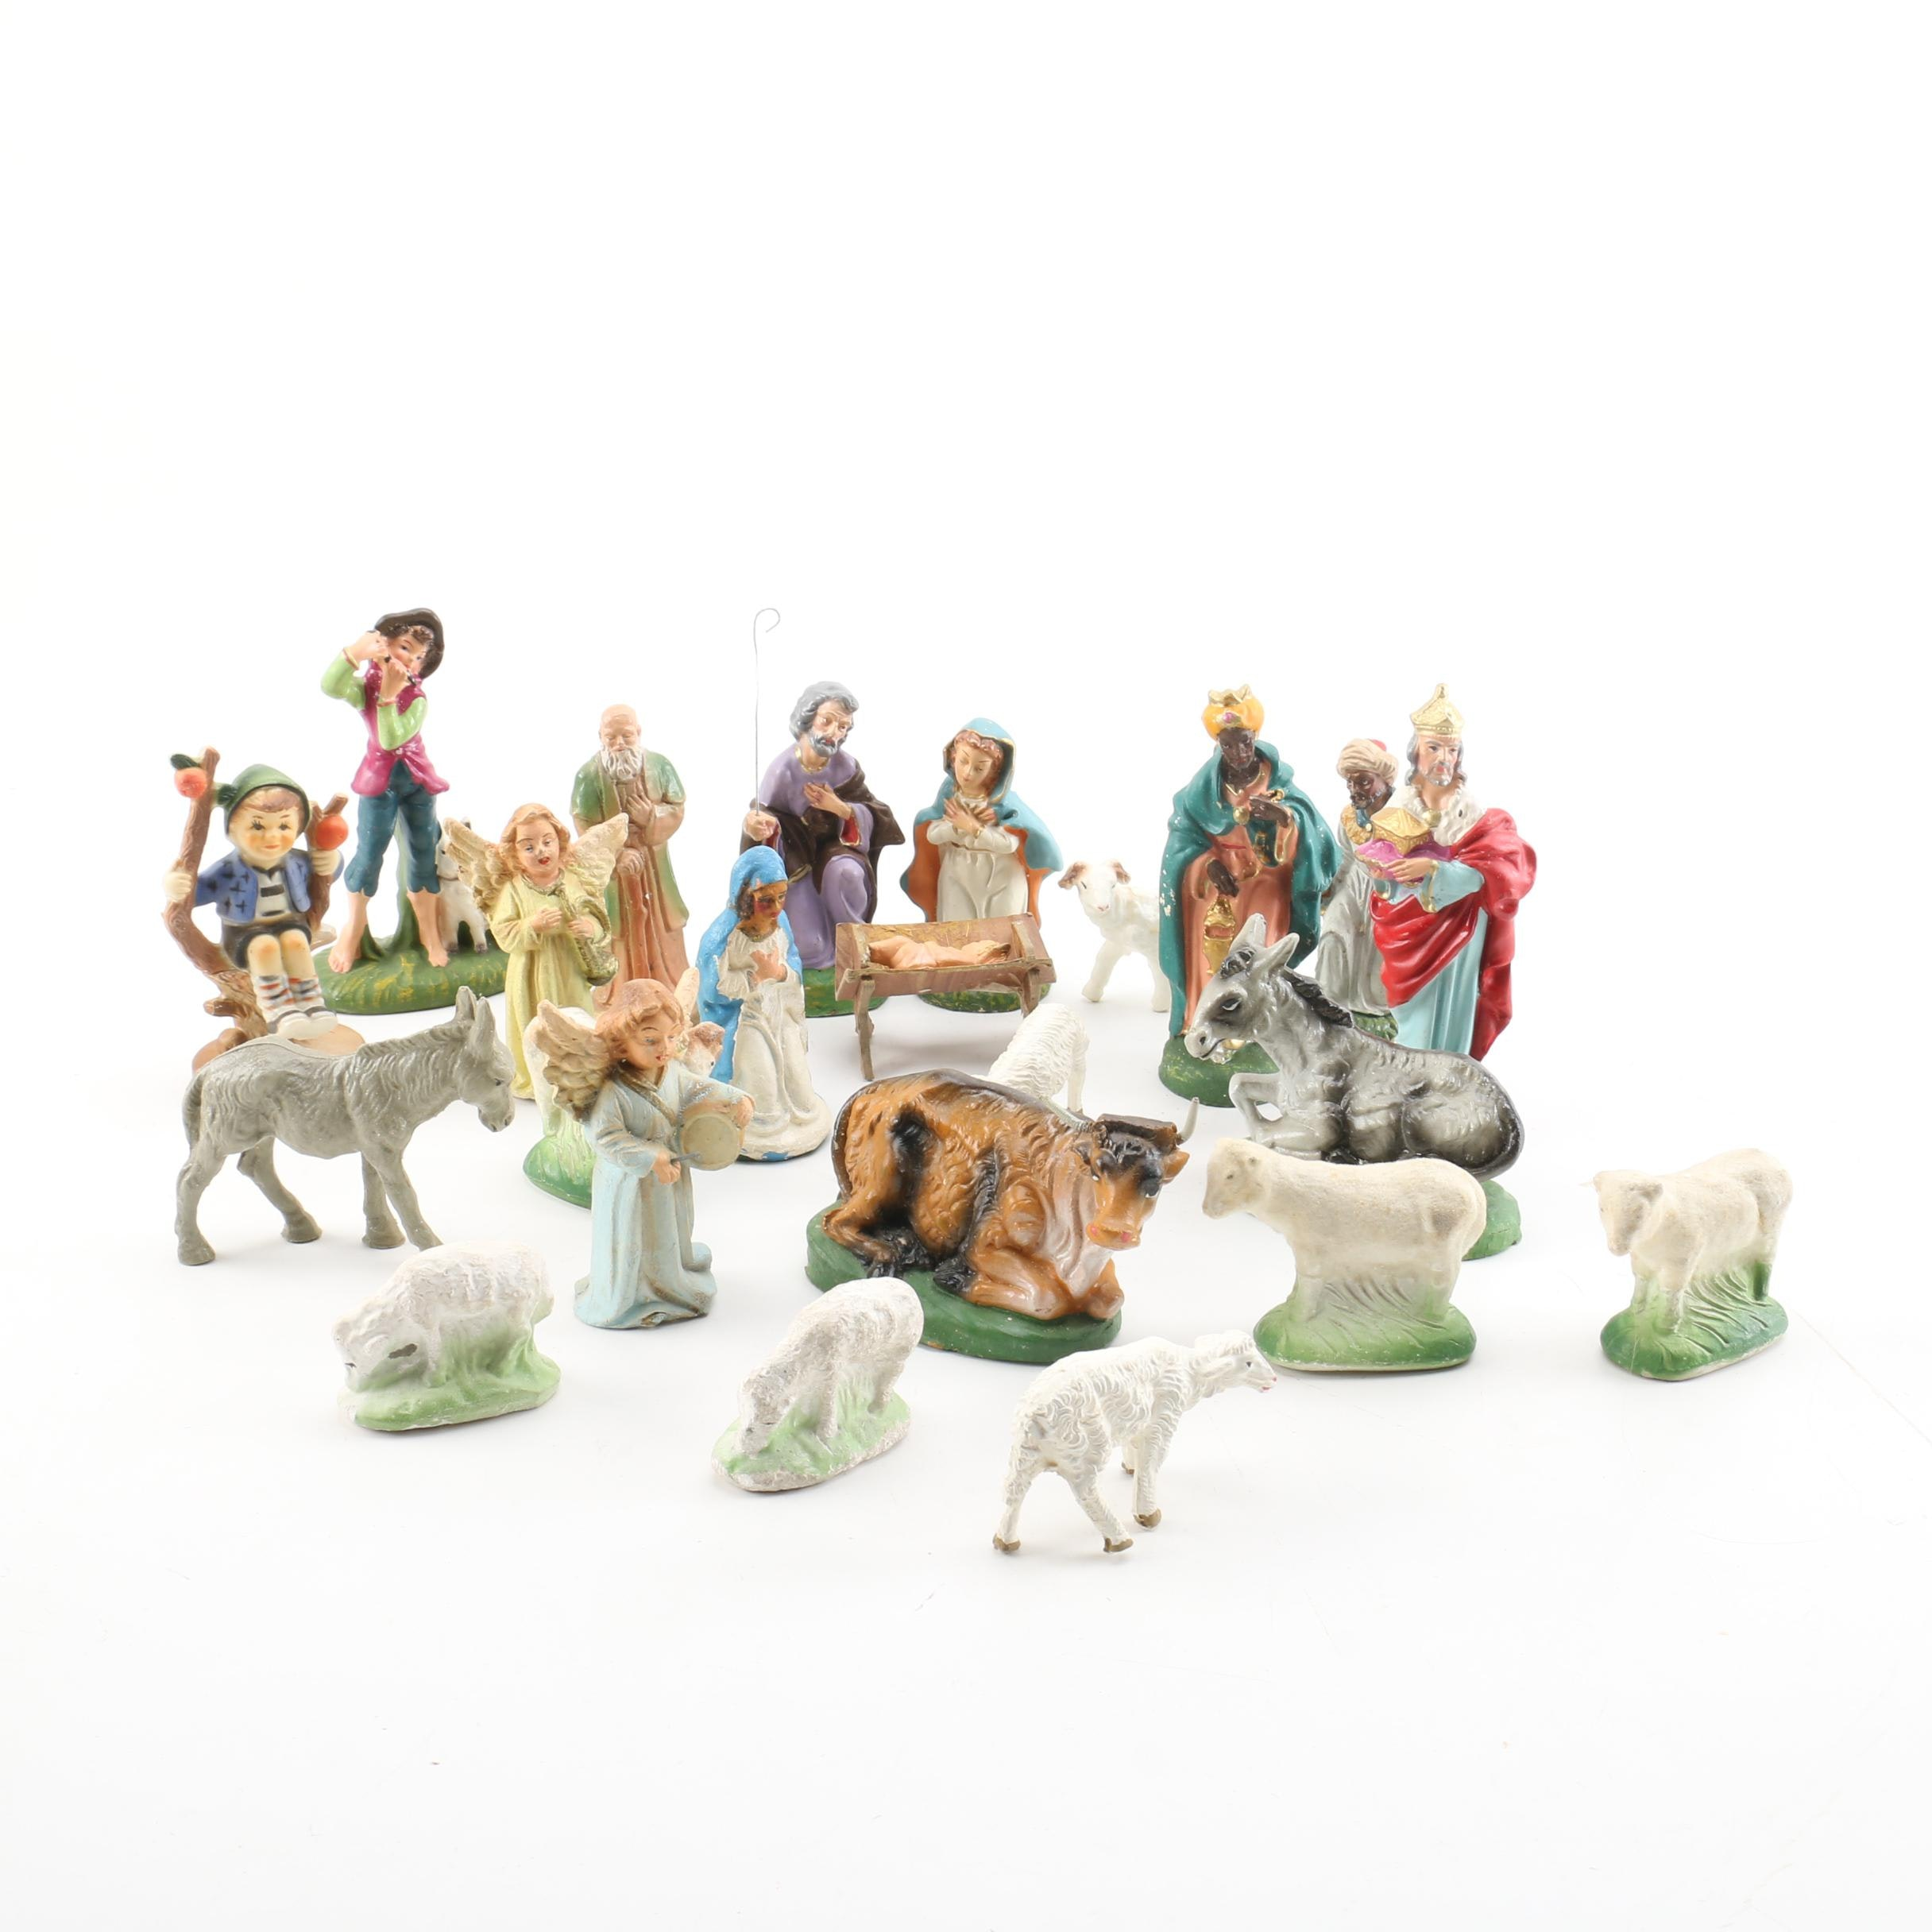 Nativity Scene with Various Figurines